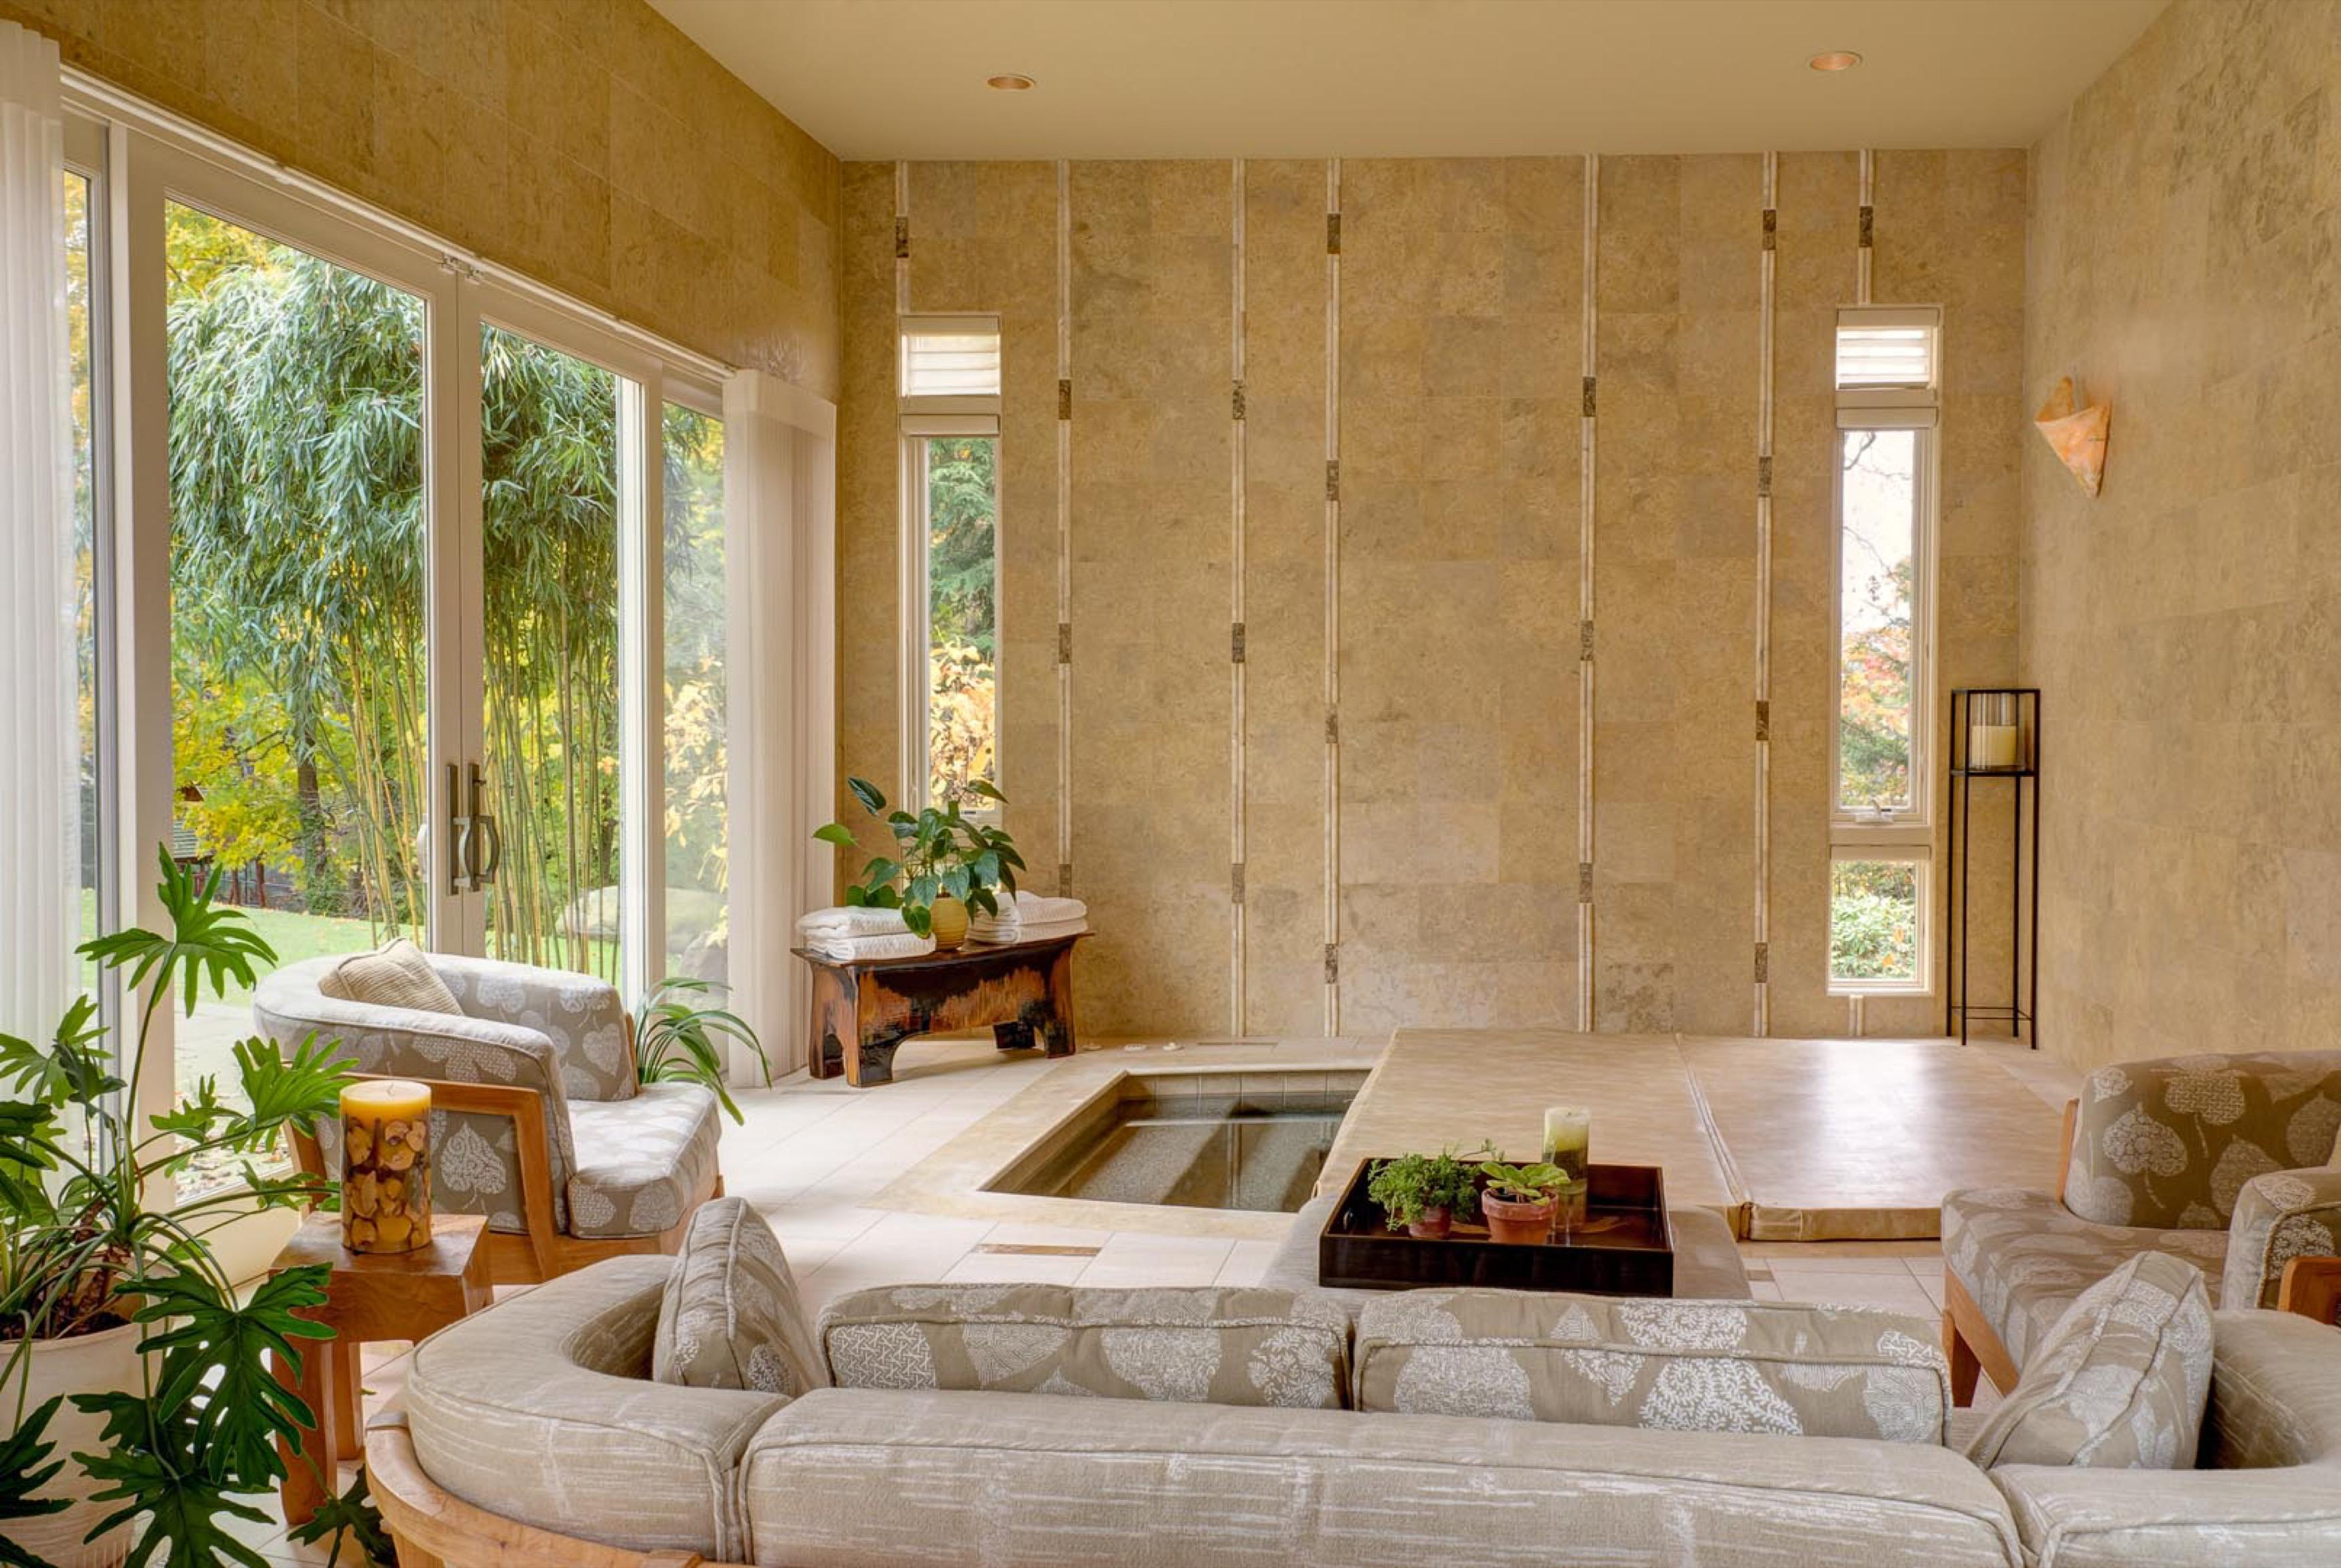 Custom Designed Stone Walls With Vertical Inset Accents Of Tile And Stone